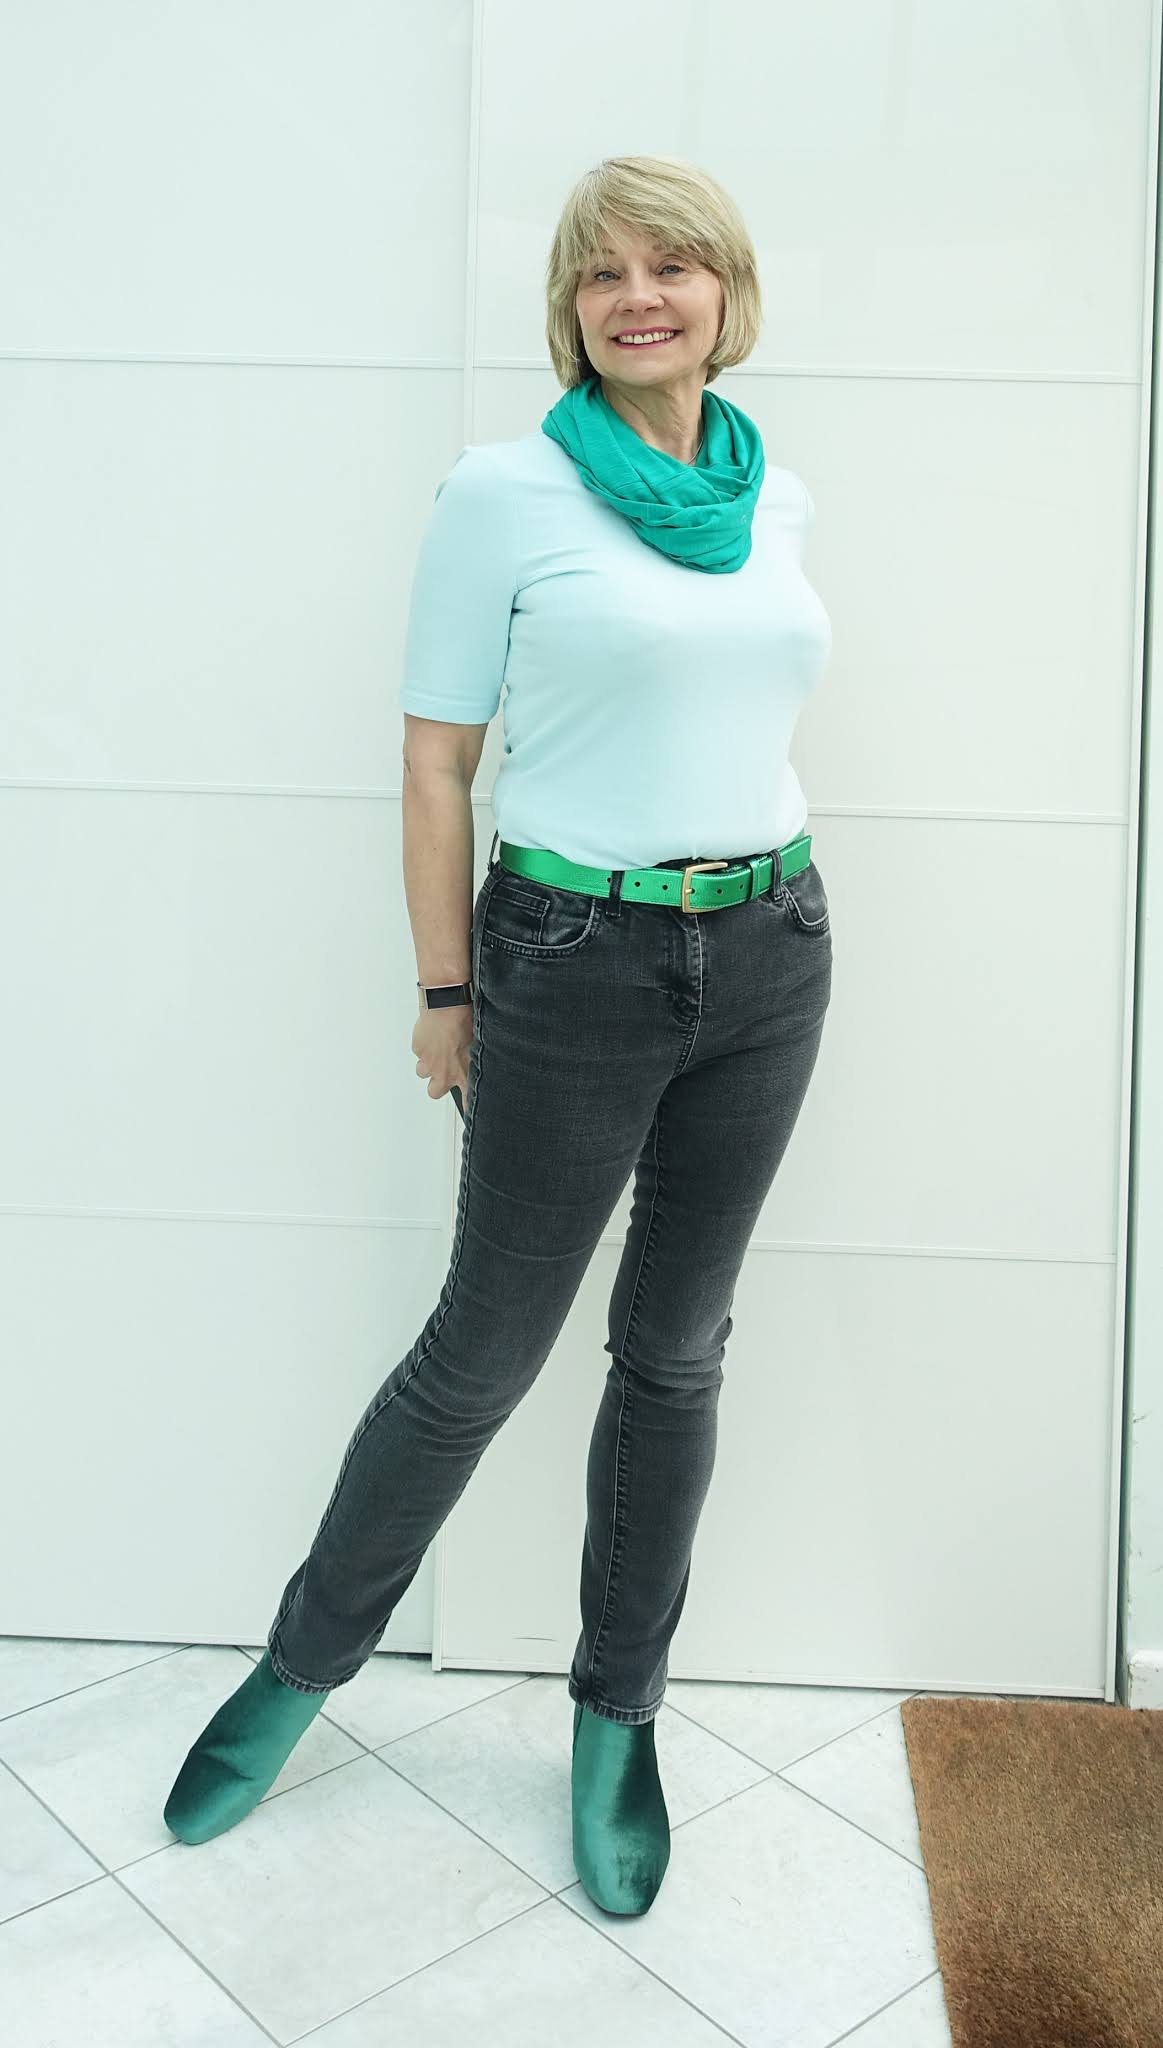 Metallic belts, infinity scarves and colourful boots are great ways to add your own style touches to jeans and a t-shirt